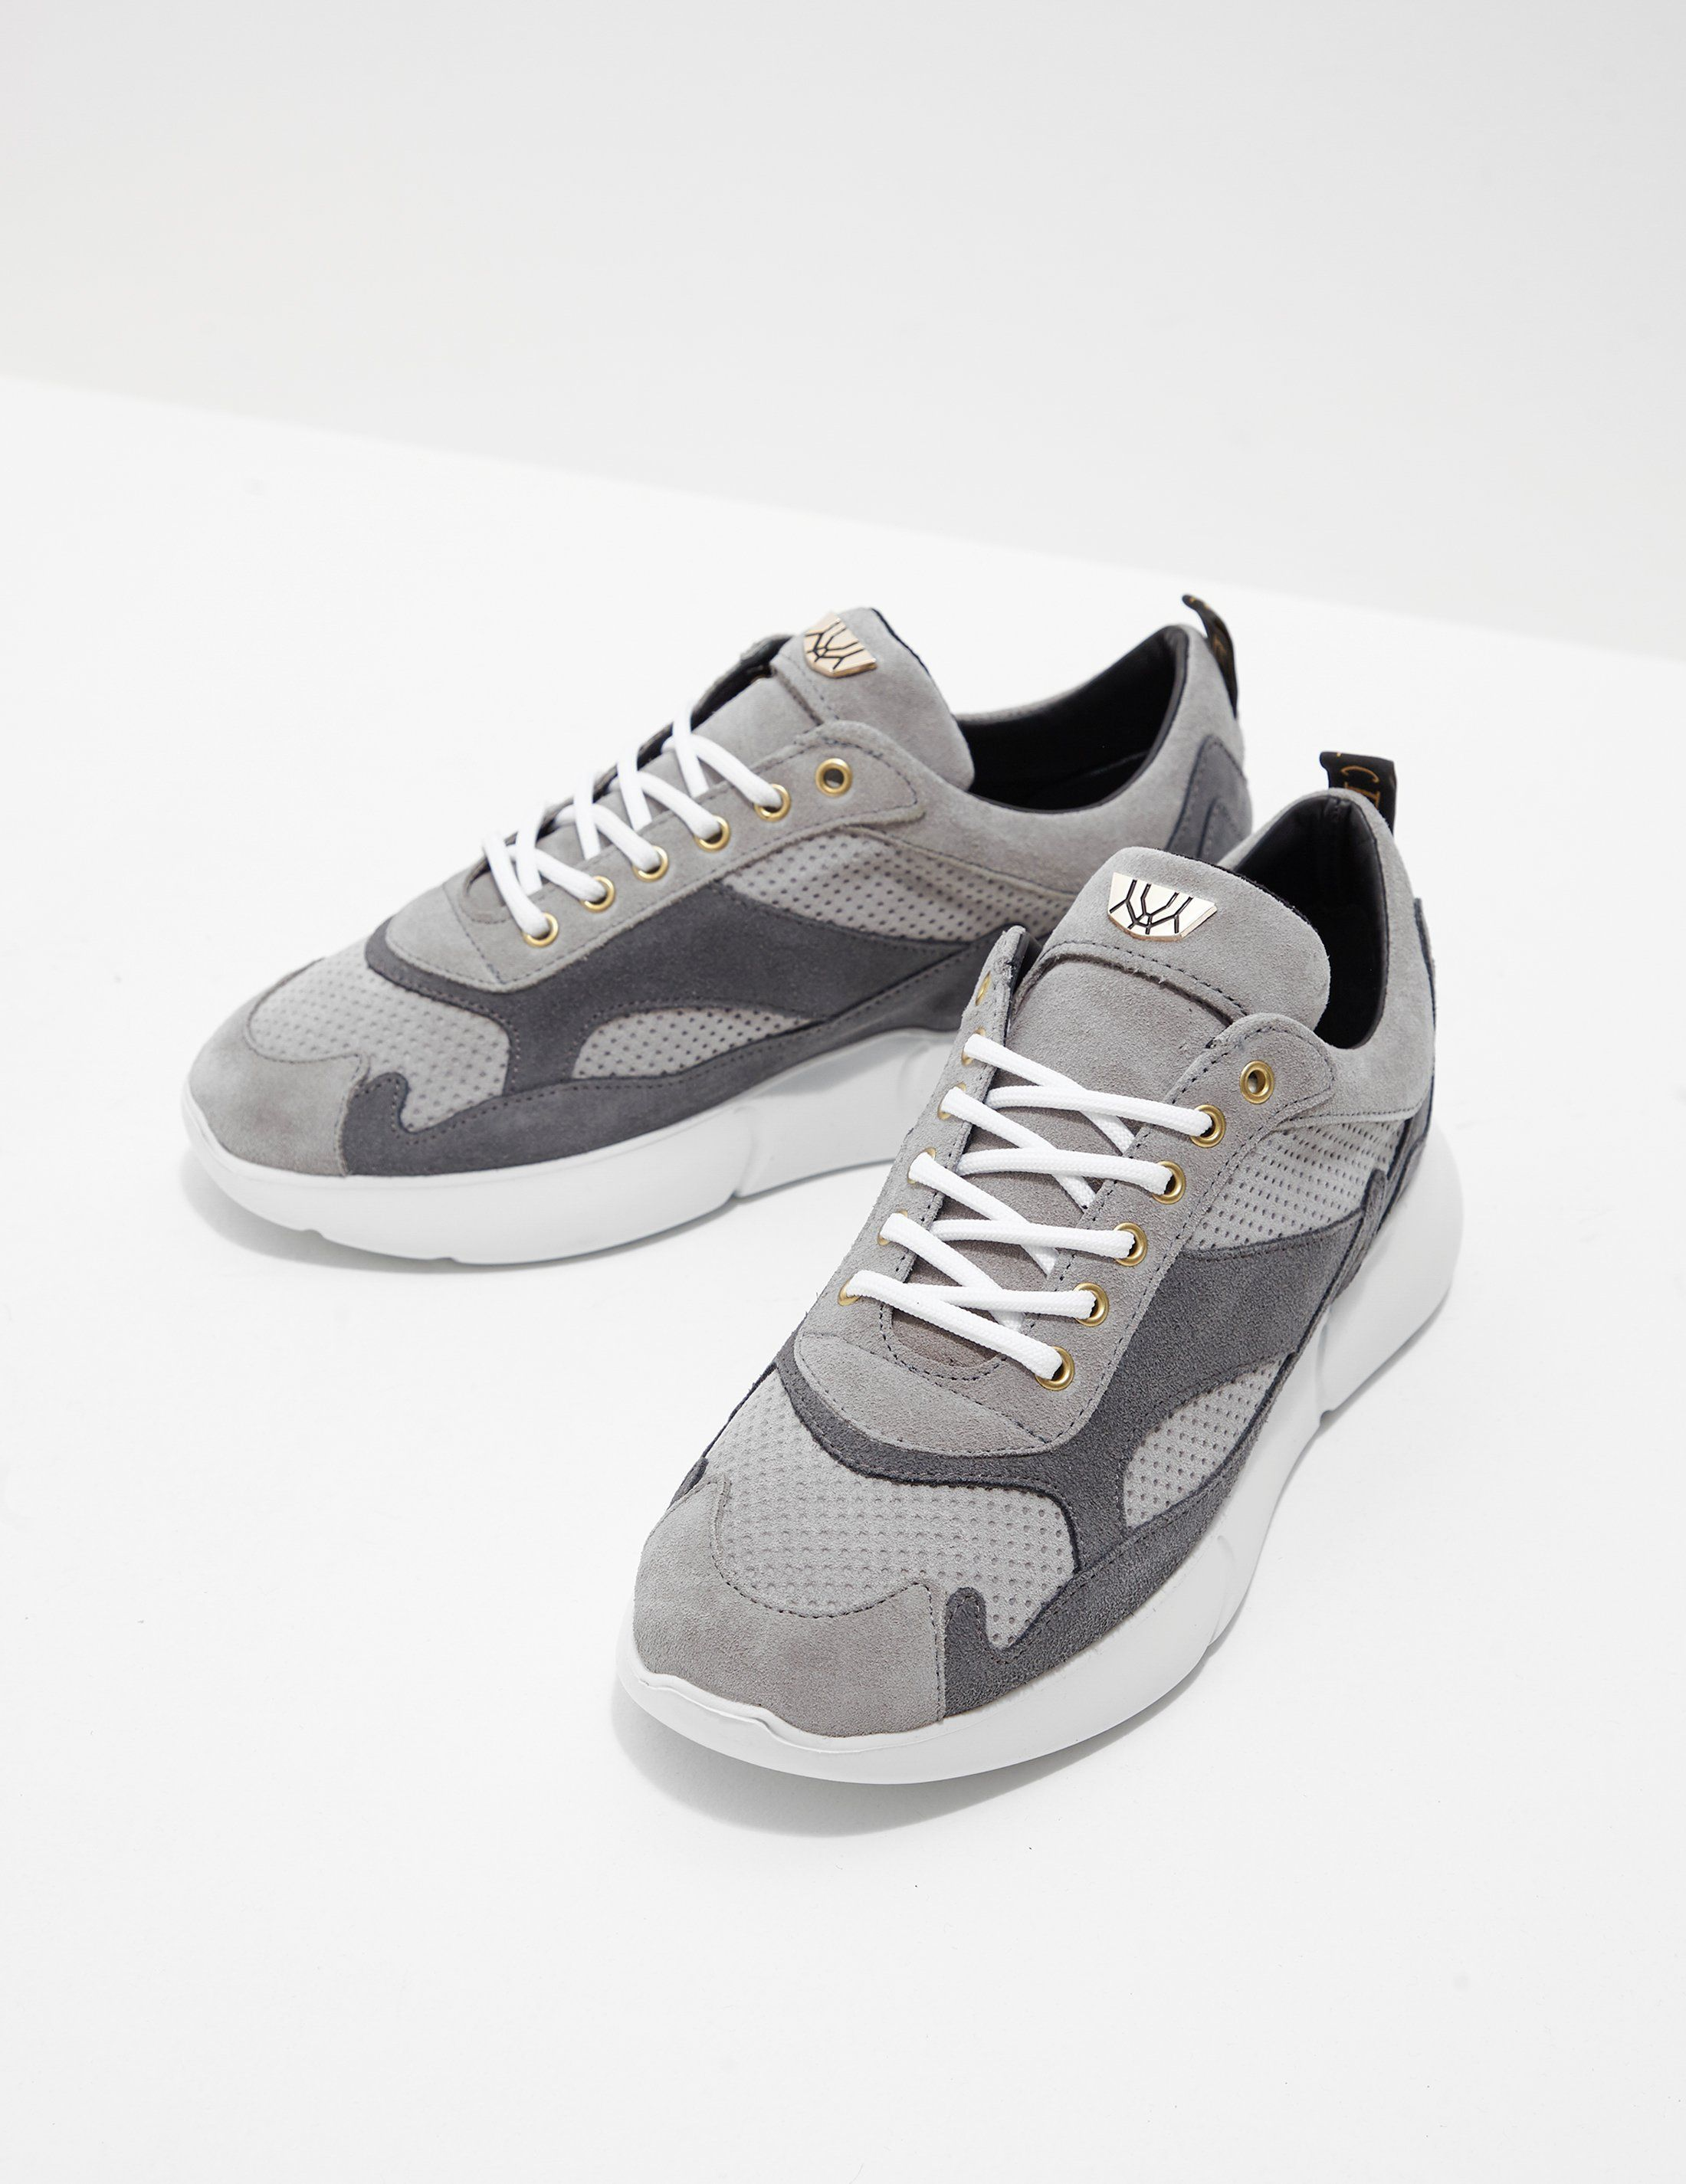 MERCER W3RD Suede Trainers - Online Exclusive